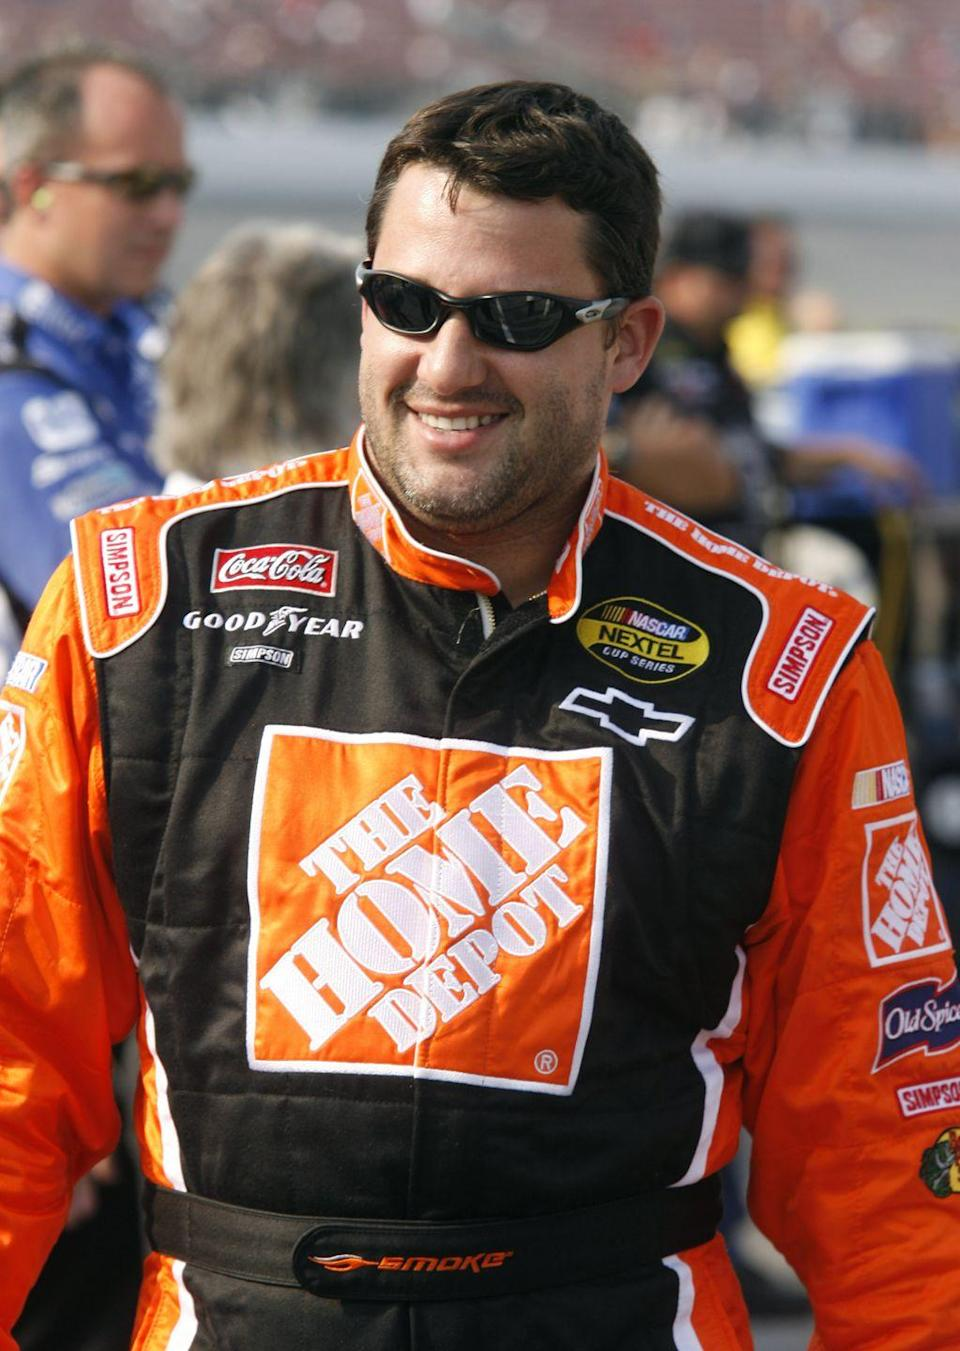 """<p>The race car driver and NASCAR team owner is another celebrity who used to work at McDonald's. According to the <a href=""""https://www.cedwardsgroup.com/team/famous-employees.html"""" rel=""""nofollow noopener"""" target=""""_blank"""" data-ylk=""""slk:Chuck Edwards Group"""" class=""""link rapid-noclick-resp"""">Chuck Edwards Group</a>, which oversees McDonald's business operations, Tony worked at McDonald's when he was a teenager.</p>"""